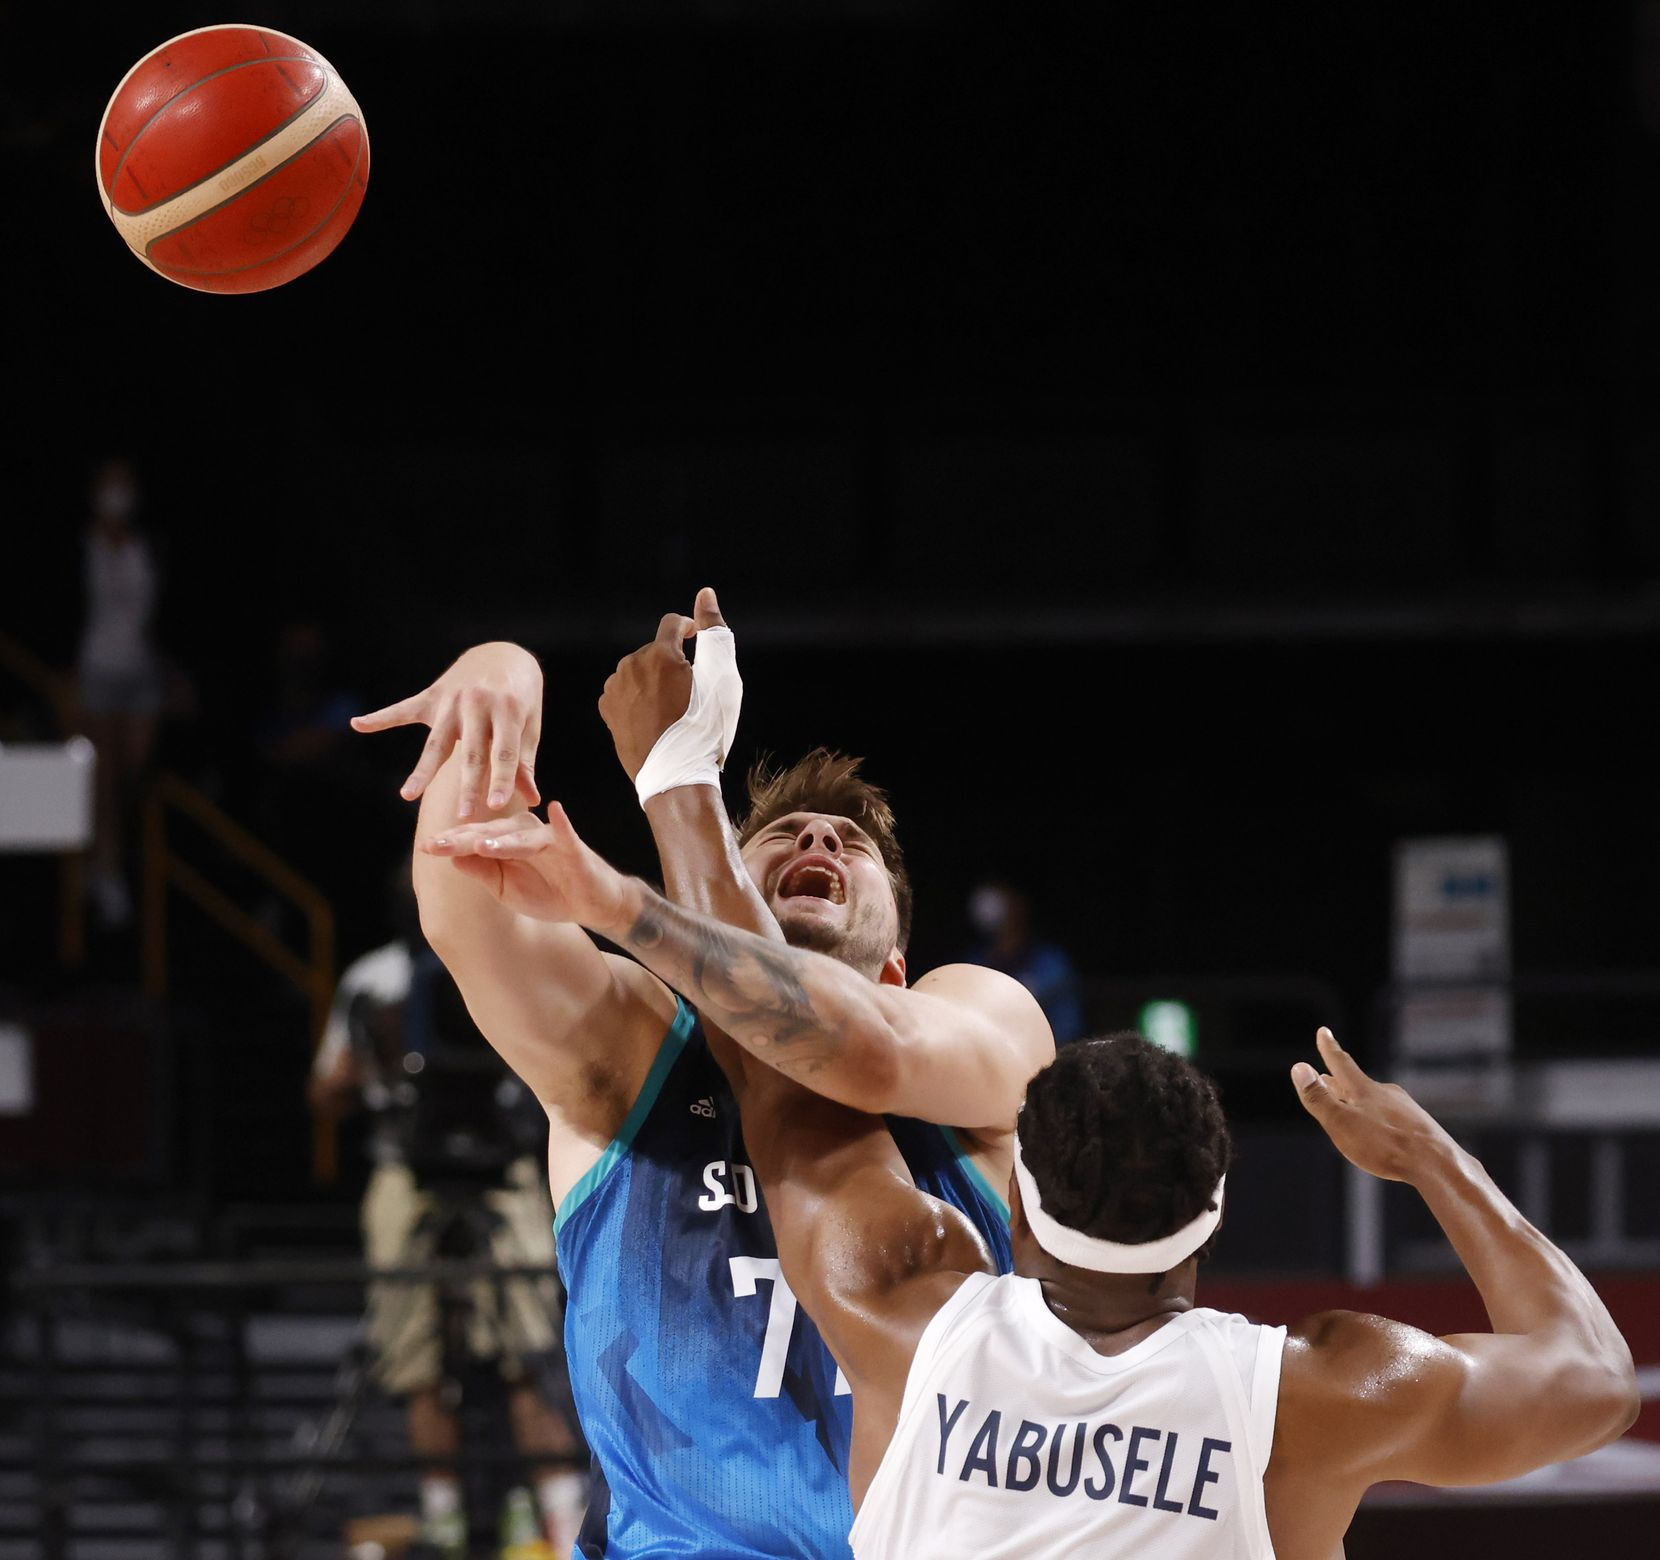 Slovenia's Luka Doncic (77) passes the ball as he is hit by France's Guerschon Yabusele (7) during the first half of a men's basketball semifinal at the postponed 2020 Tokyo Olympics at Saitama Super Arena, on Thursday, August 5, 2021, in Saitama, Japan. (Vernon Bryant/The Dallas Morning News)